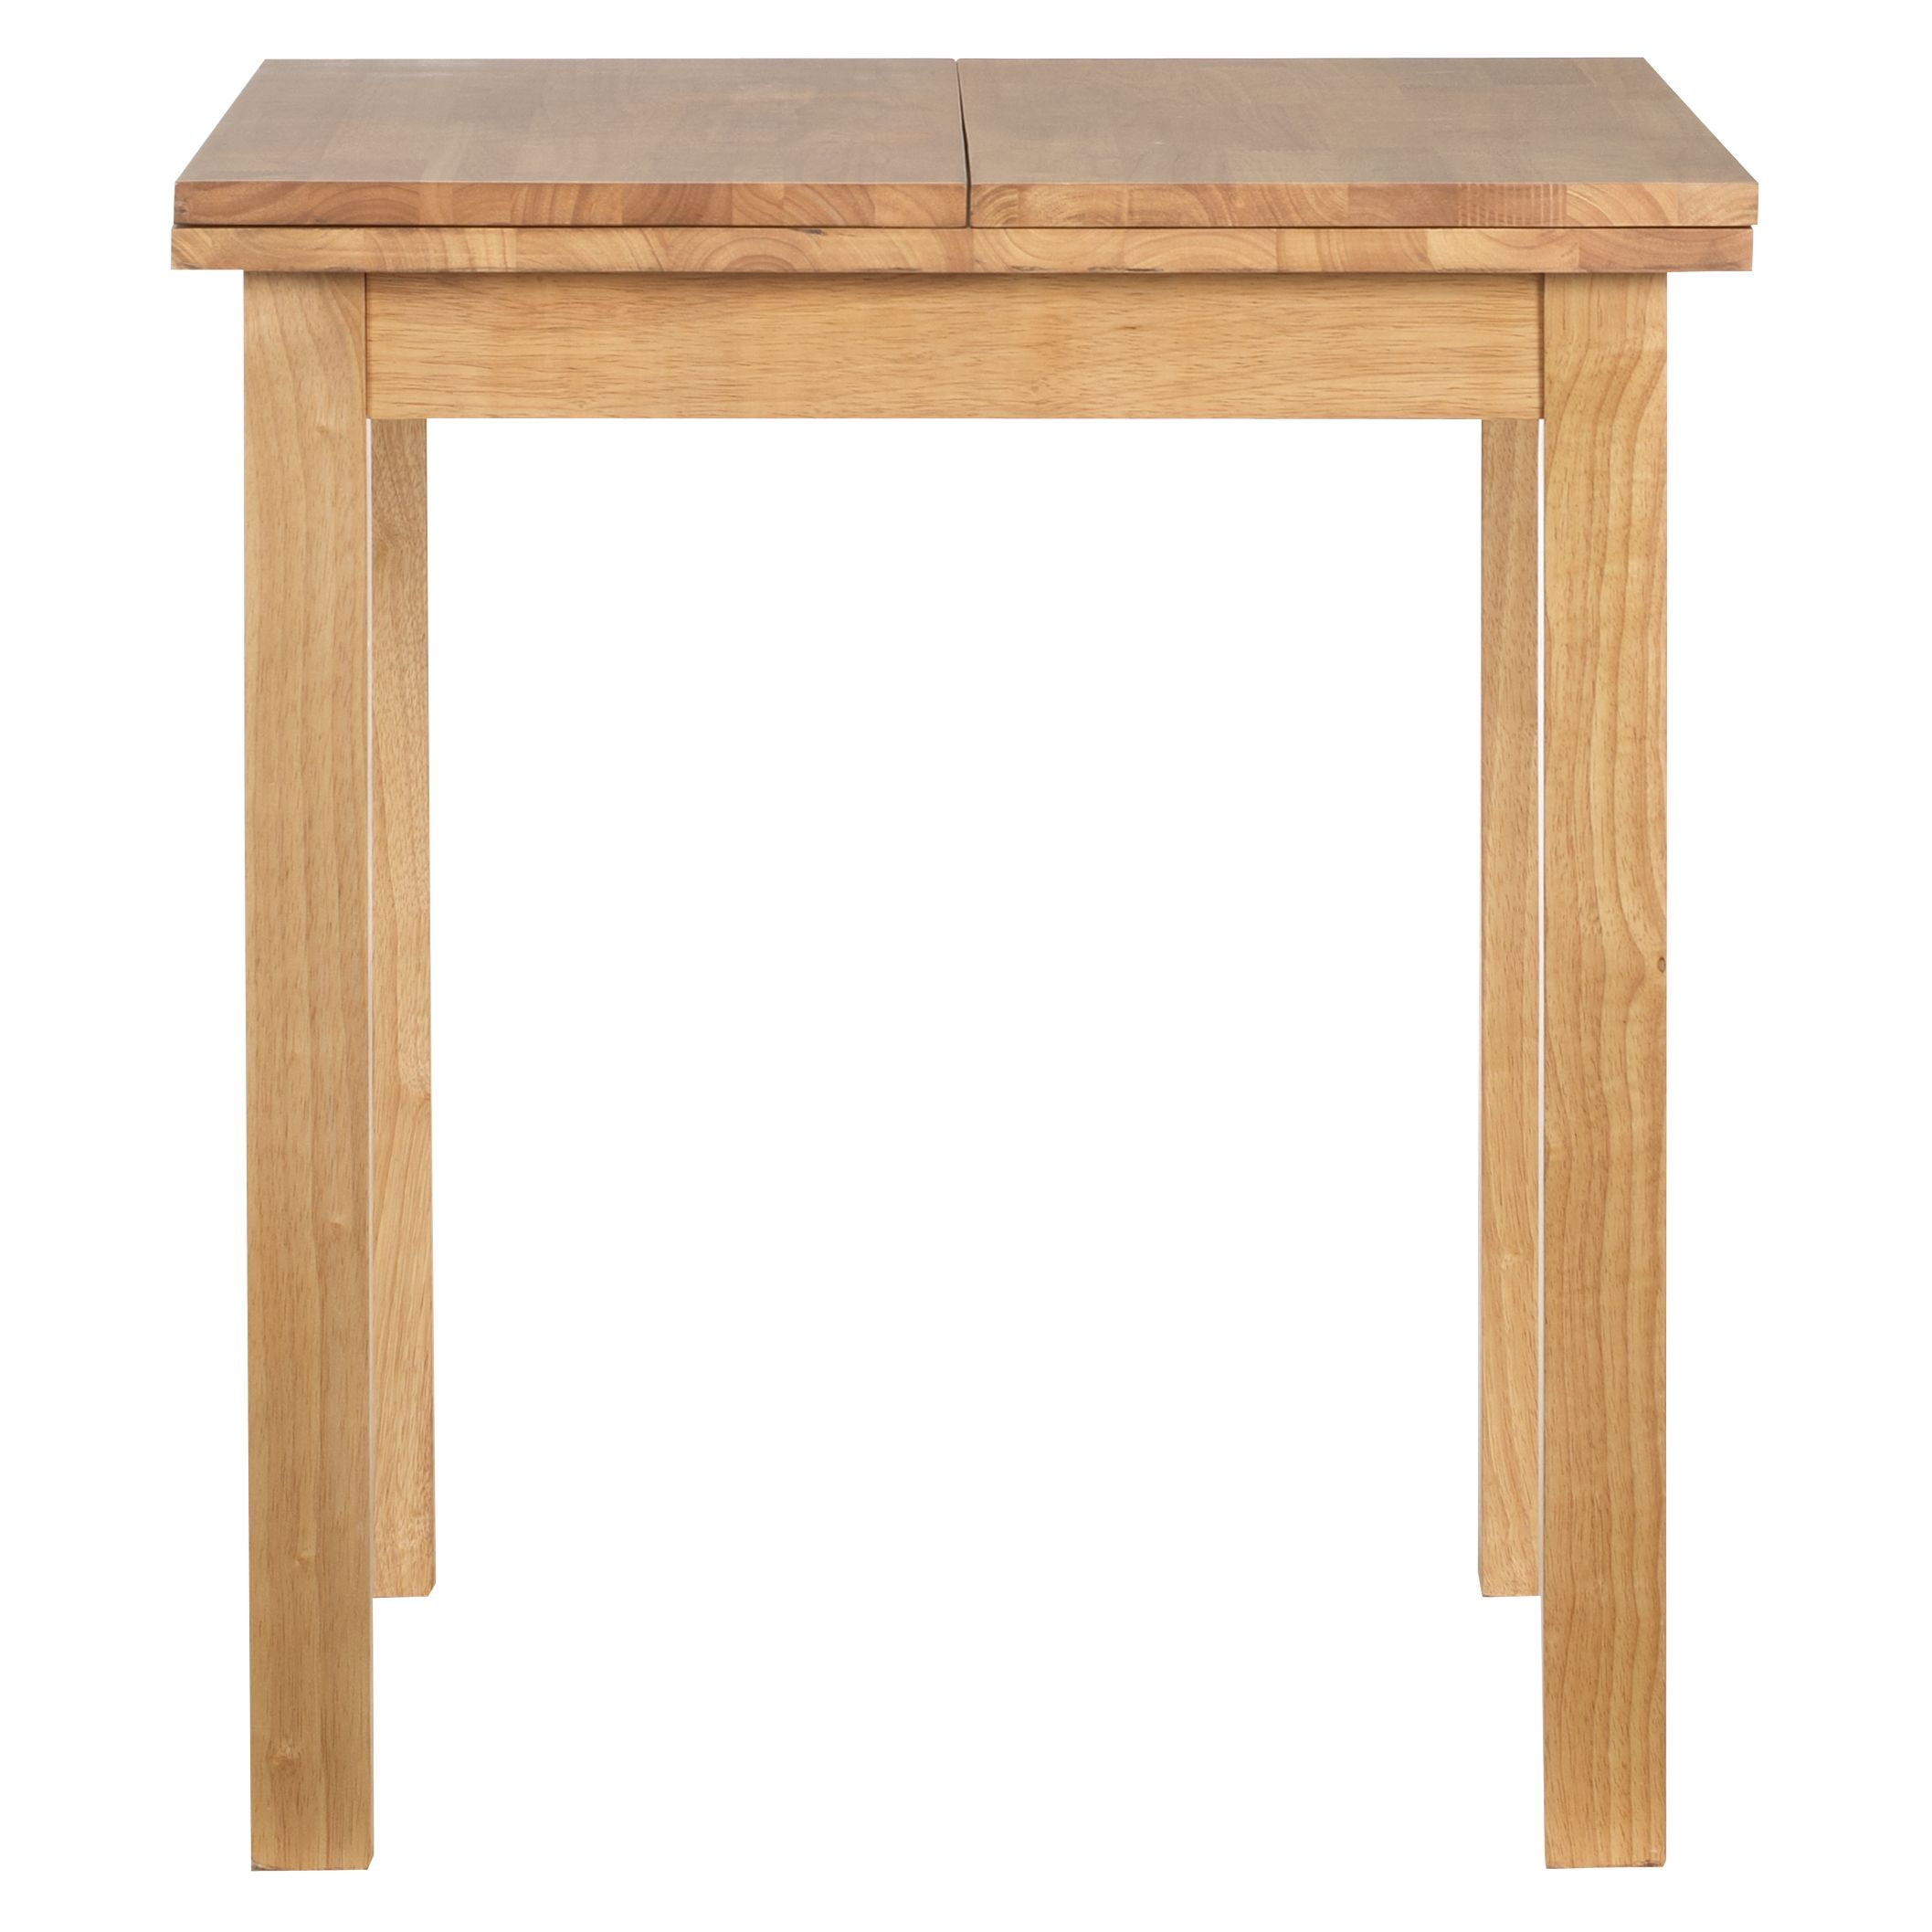 john lewis dining tables : 231174779 from www.comparestoreprices.co.uk size 1600 x 1600 jpeg 154kB